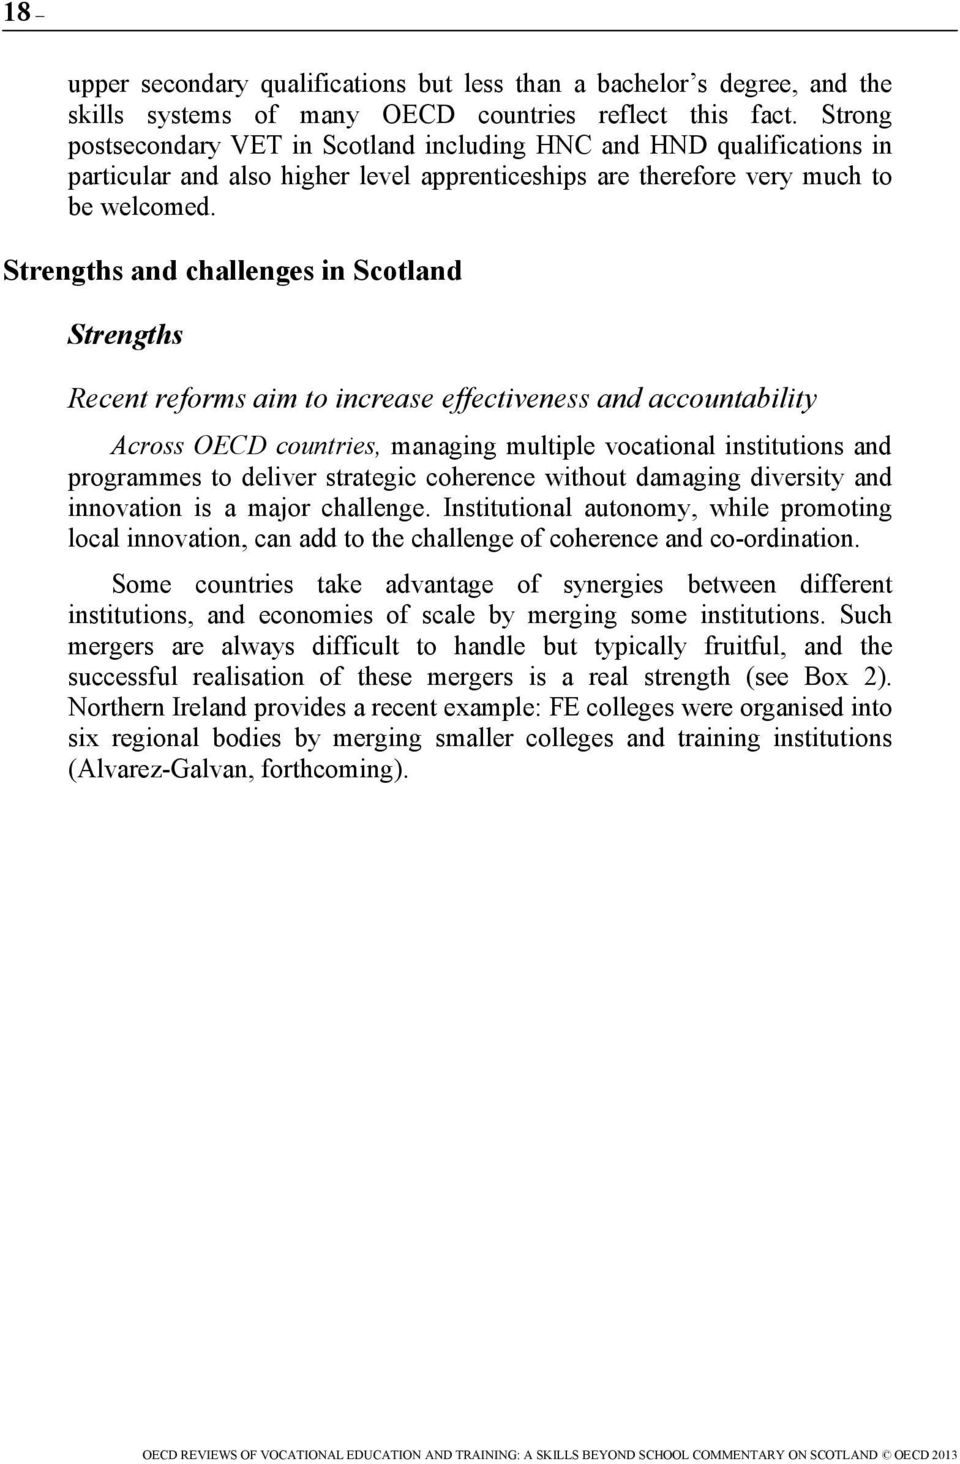 Strengths and challenges in Scotland Strengths Recent reforms aim to increase effectiveness and accountability Across OECD countries, managing multiple vocational institutions and programmes to